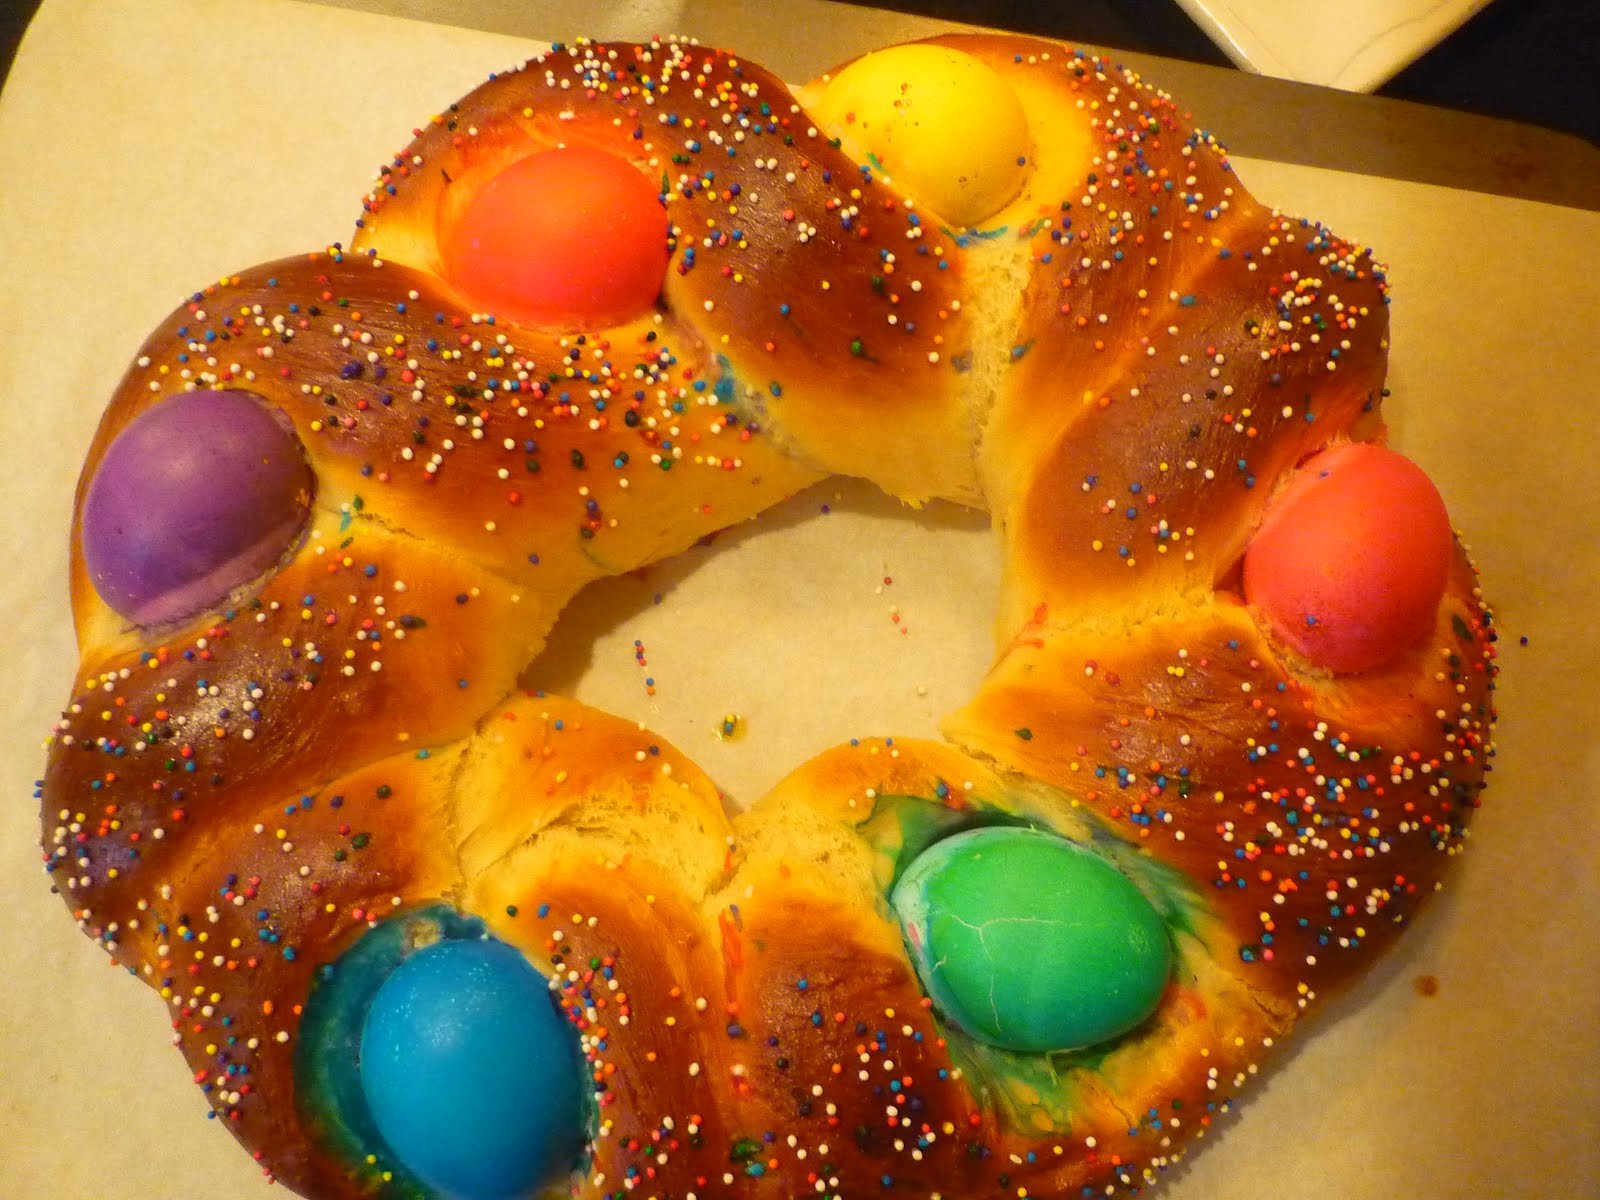 Italian Easter Bread With Hard Boiled Eggs  Eat A Plant Buona Pasqua with Italian Easter Bread